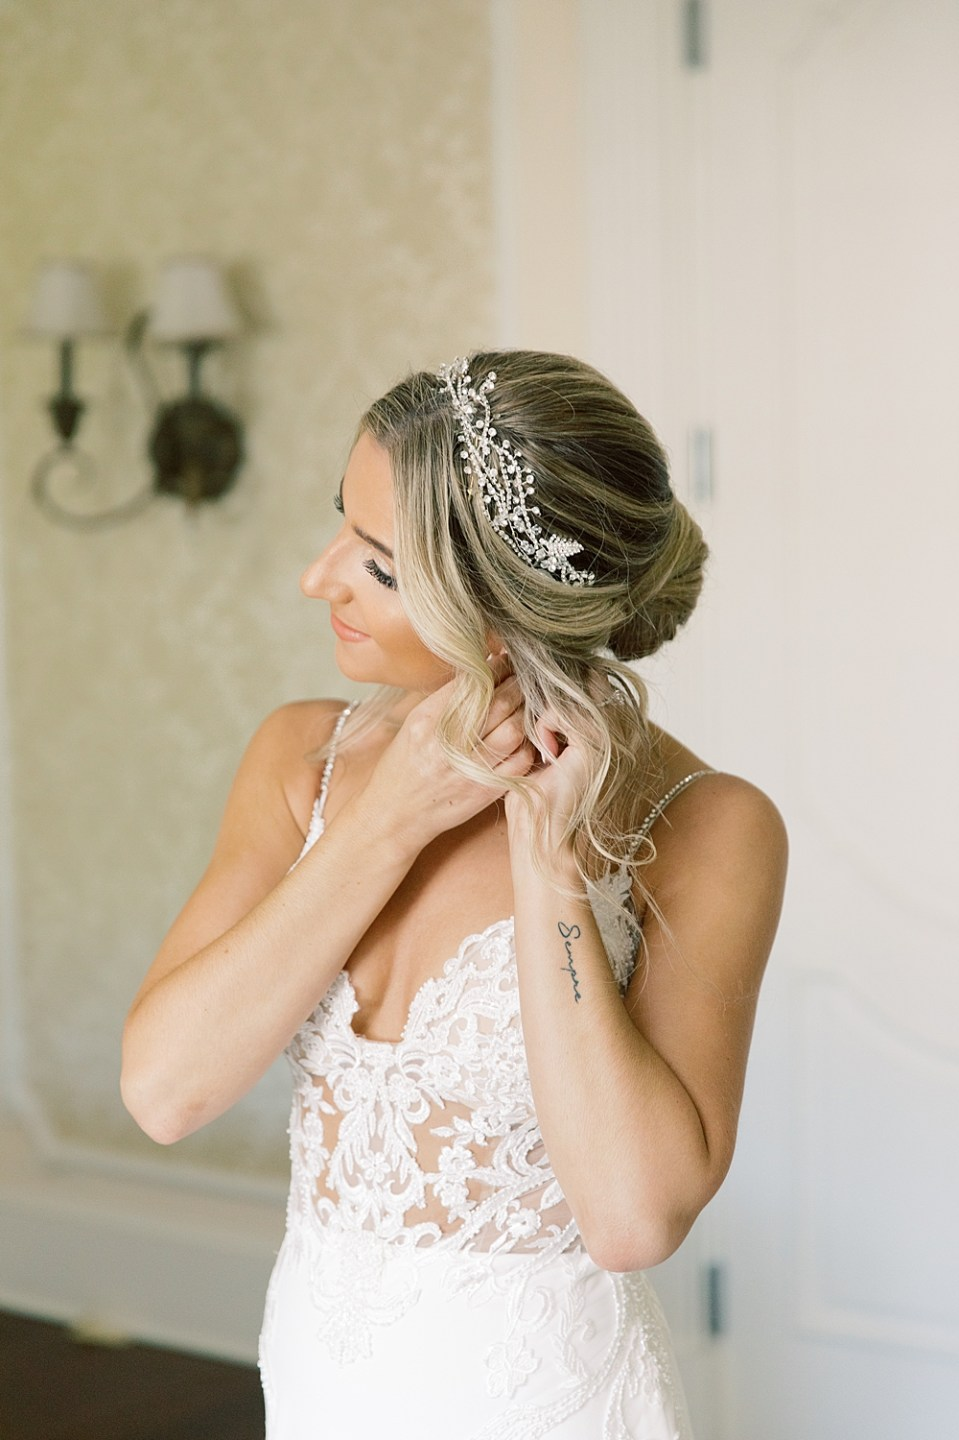 bride getting ready | ashford estate wedding photography | sarah canning photography